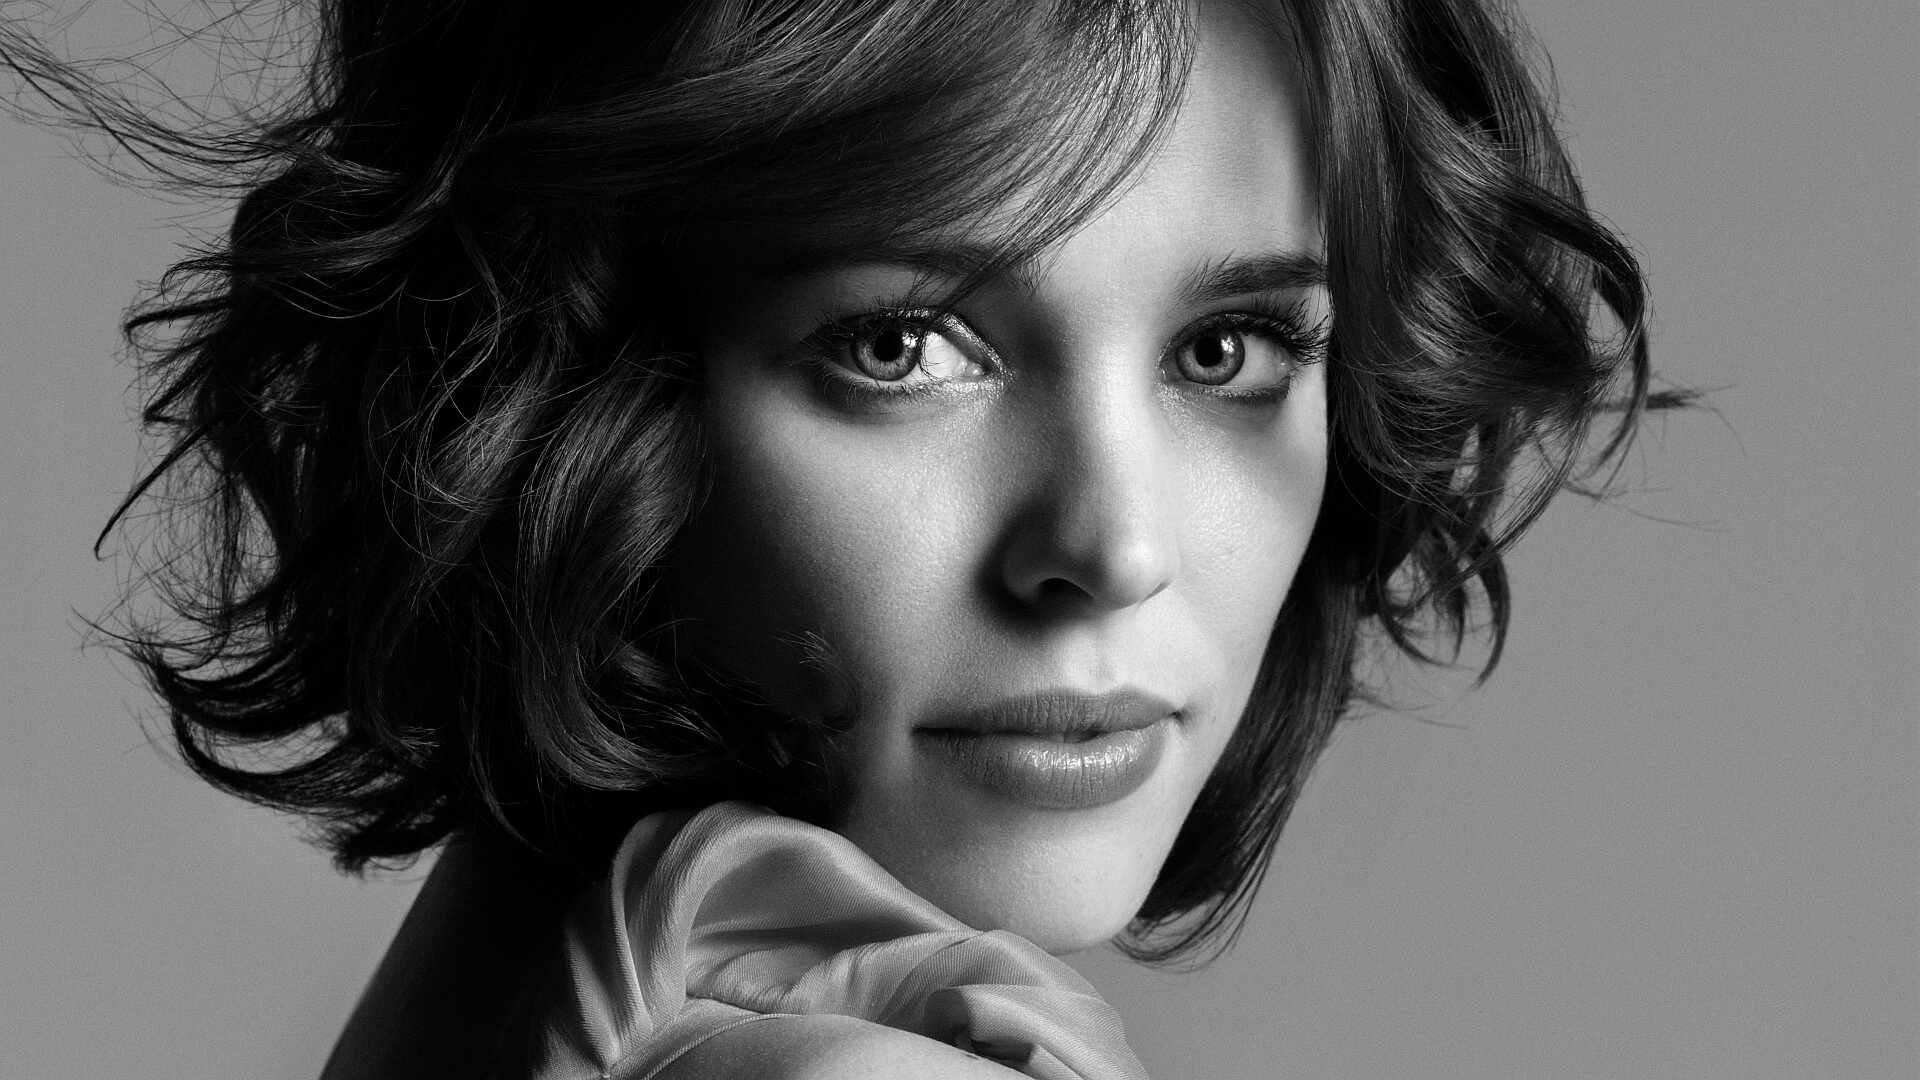 Rachel Mcadams Wallpaper 1